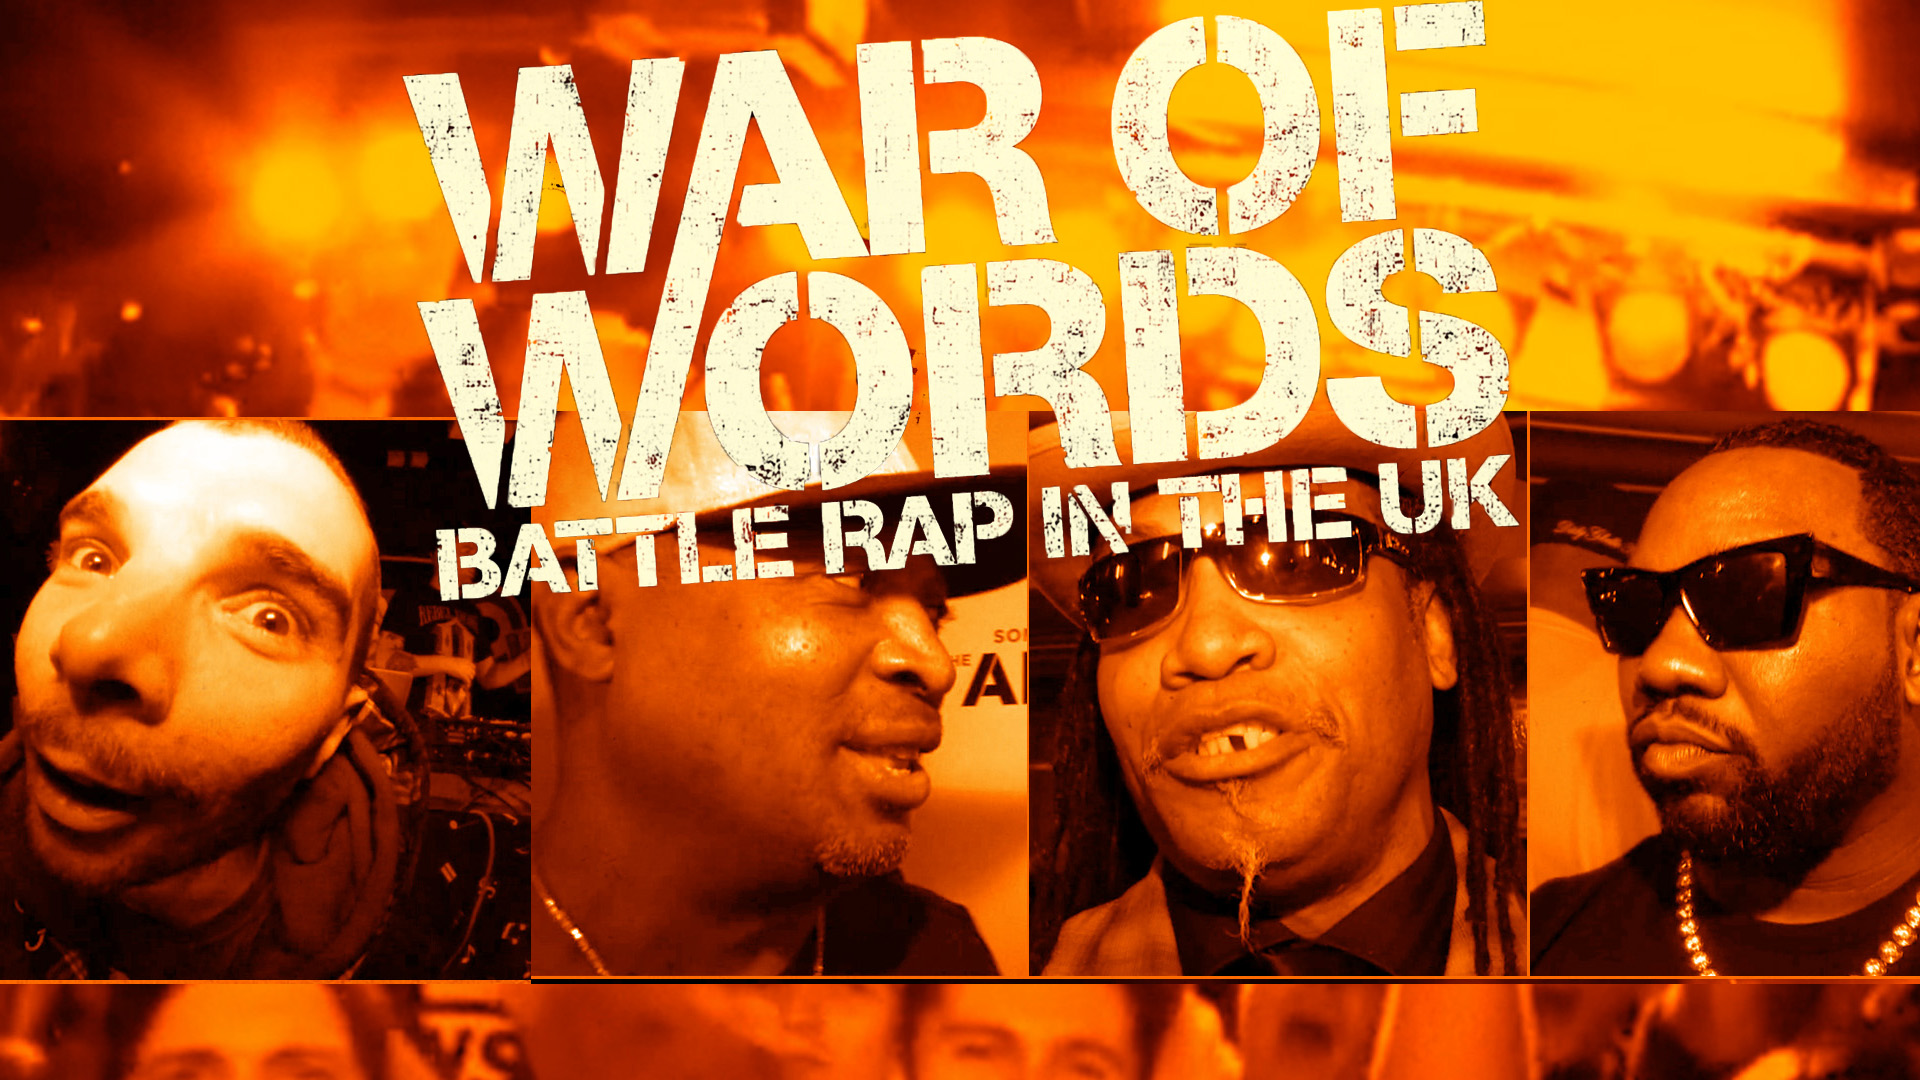 War of Words - Battle Rap in the UK